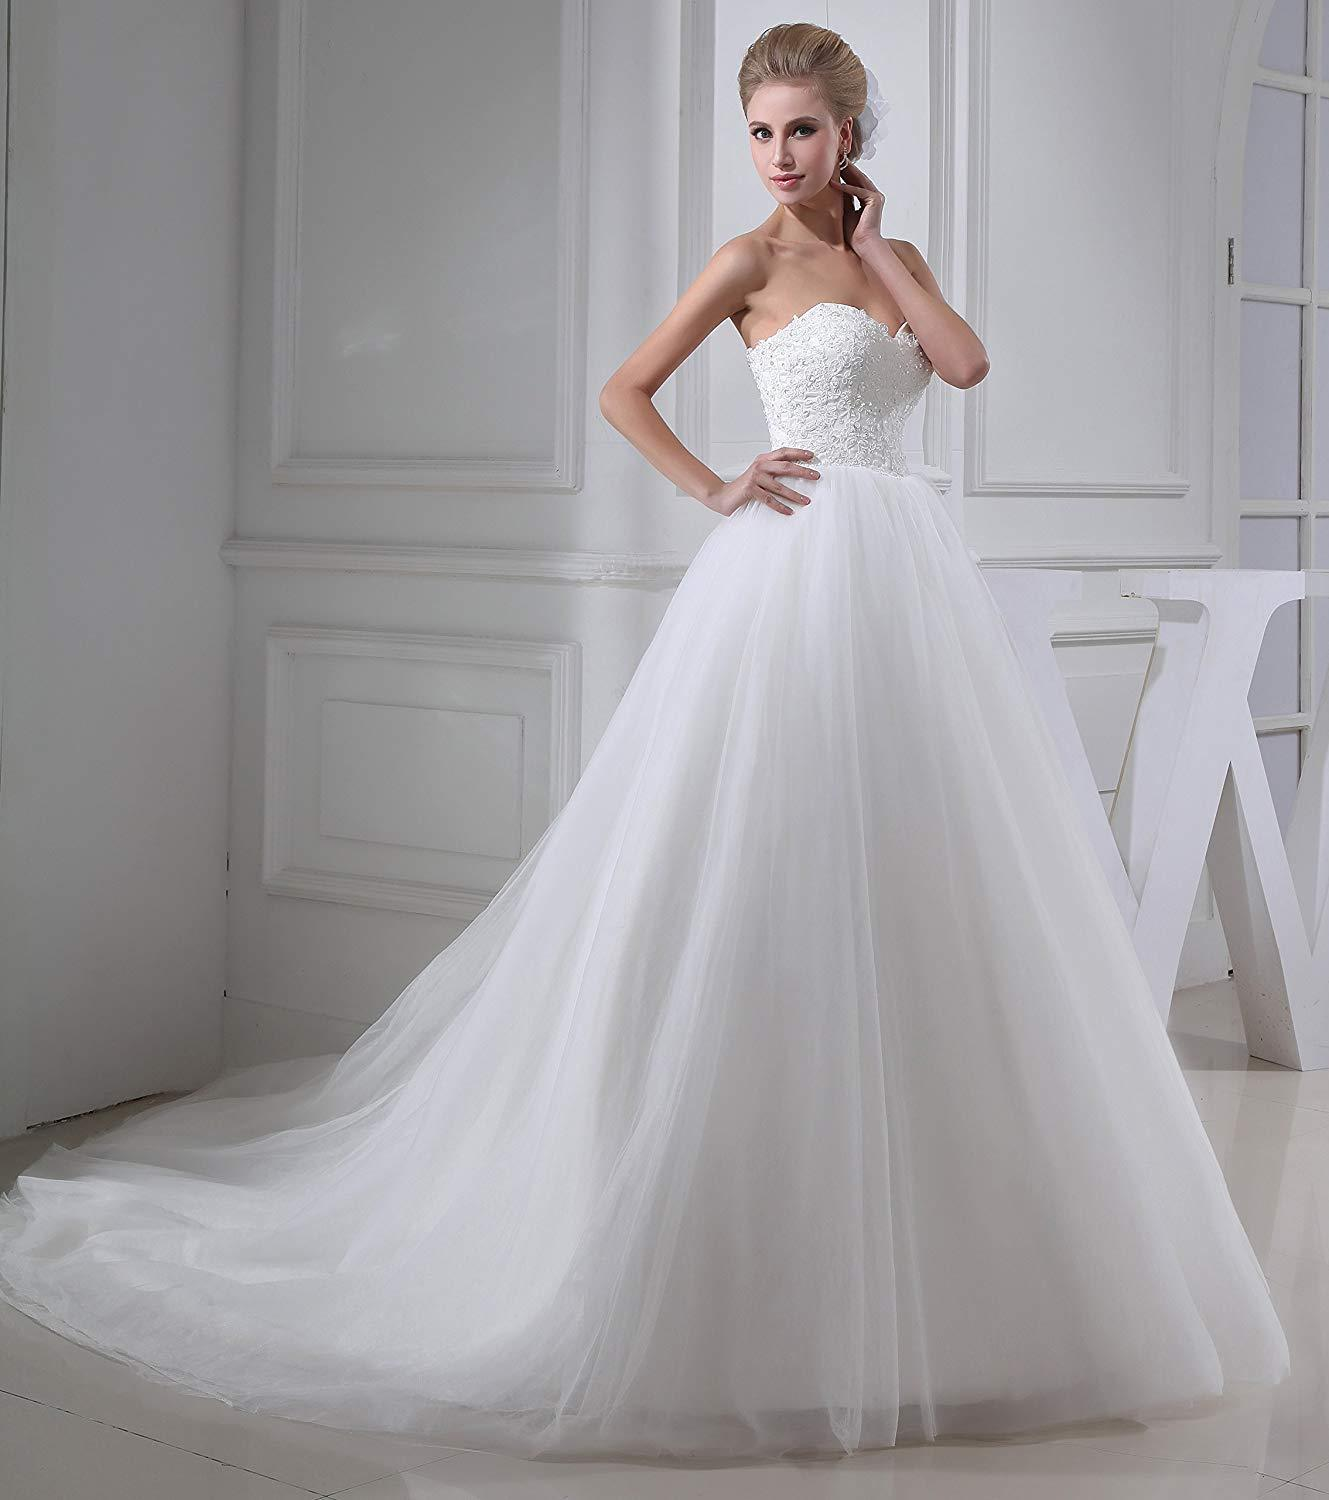 Sweetheart Lace Appliqued Beaded Tulle Wedding Dress Sleeveless Bridal Gowns